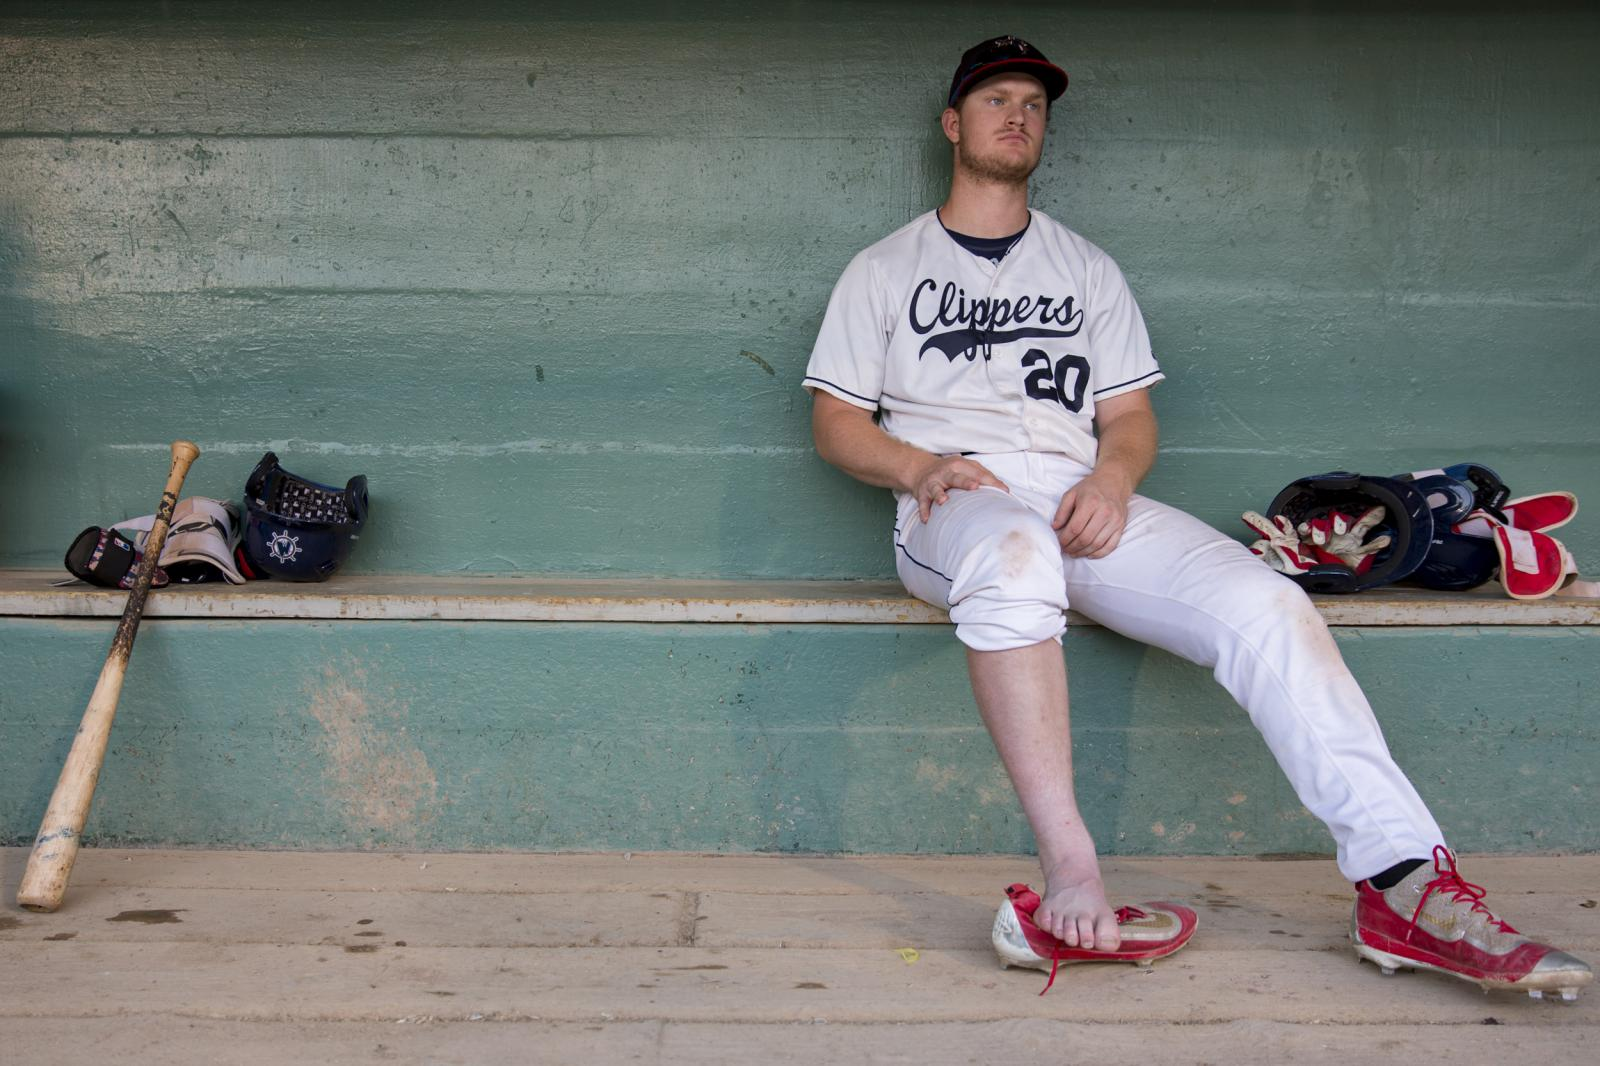 Muskegon Clippers Peter Zimmermann (20) rests in the dugout after an ankle injury on the right foot during a game against Grand River Loggers at Marsh Field in Muskegon, Michigan. Zimmermann said he was disappointed especially because his family traveled a long way from Missouri to watch the game. Loggers defeated Clippers 6-2.